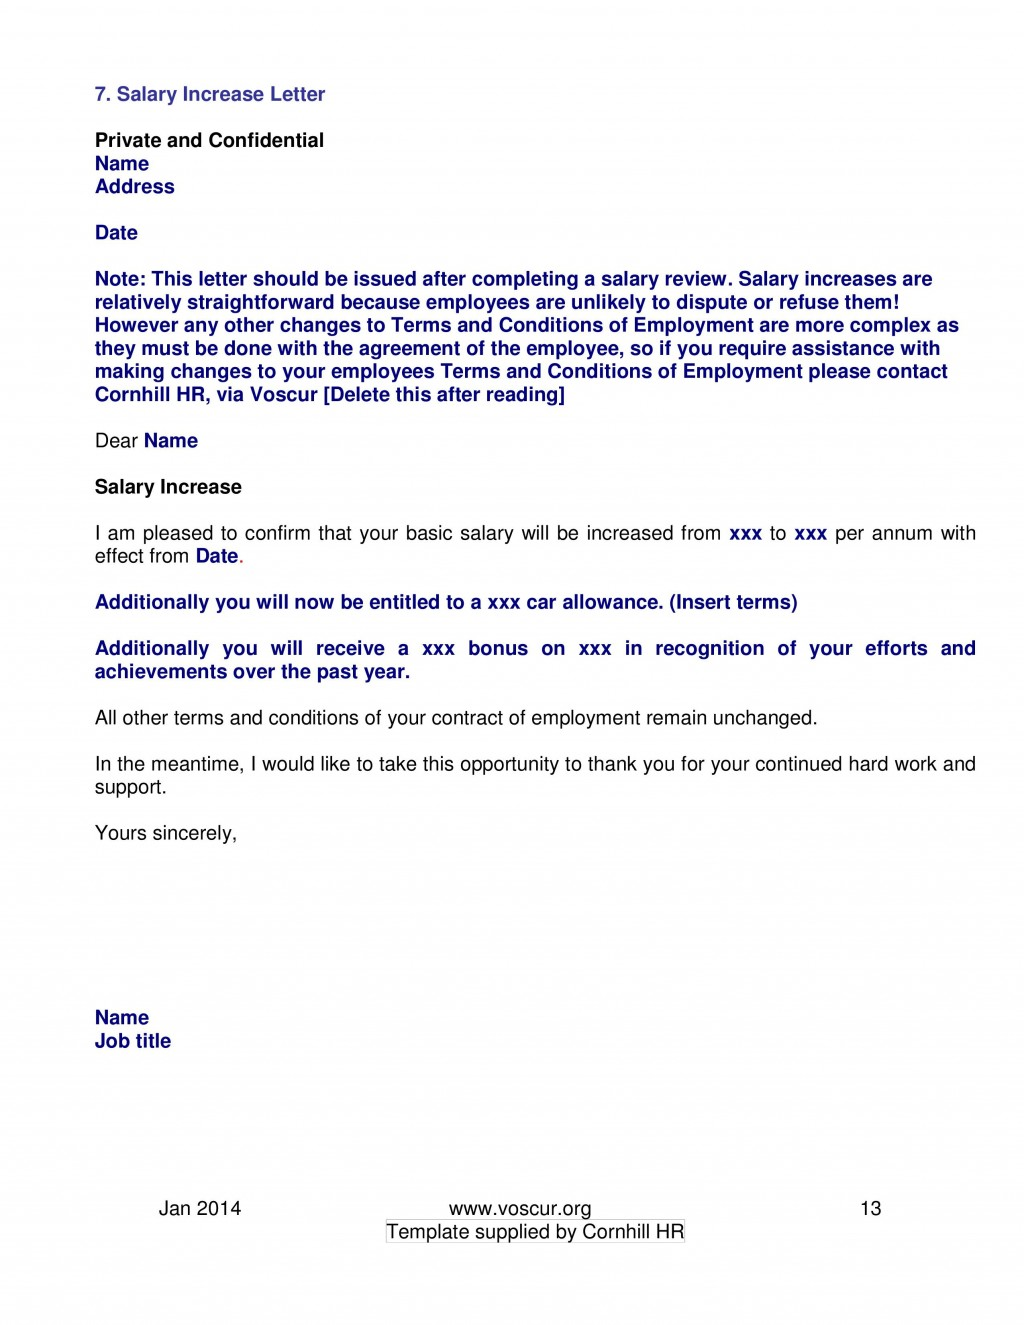 002 Excellent Salary Increase Letter Template High Resolution  From Employer To Employee Australia No ForLarge